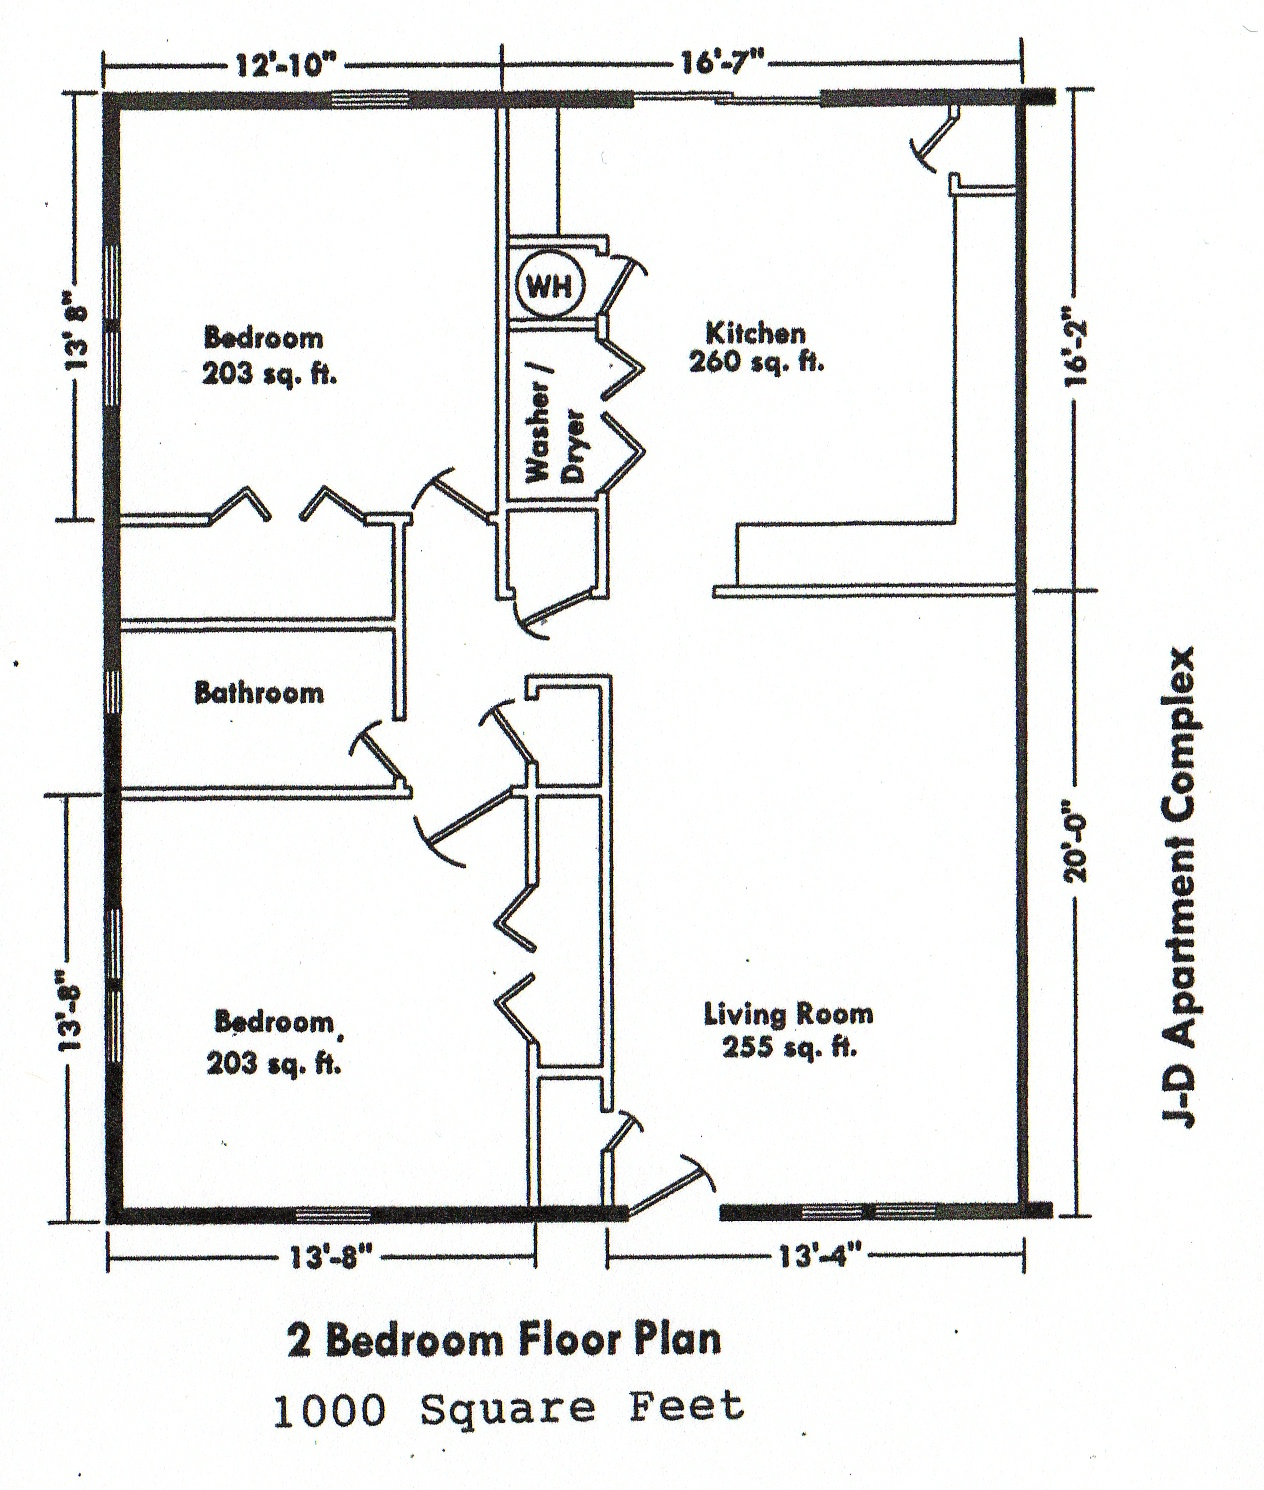 Bedroom floor plans over 5000 house plans for Dual master bedroom house plans